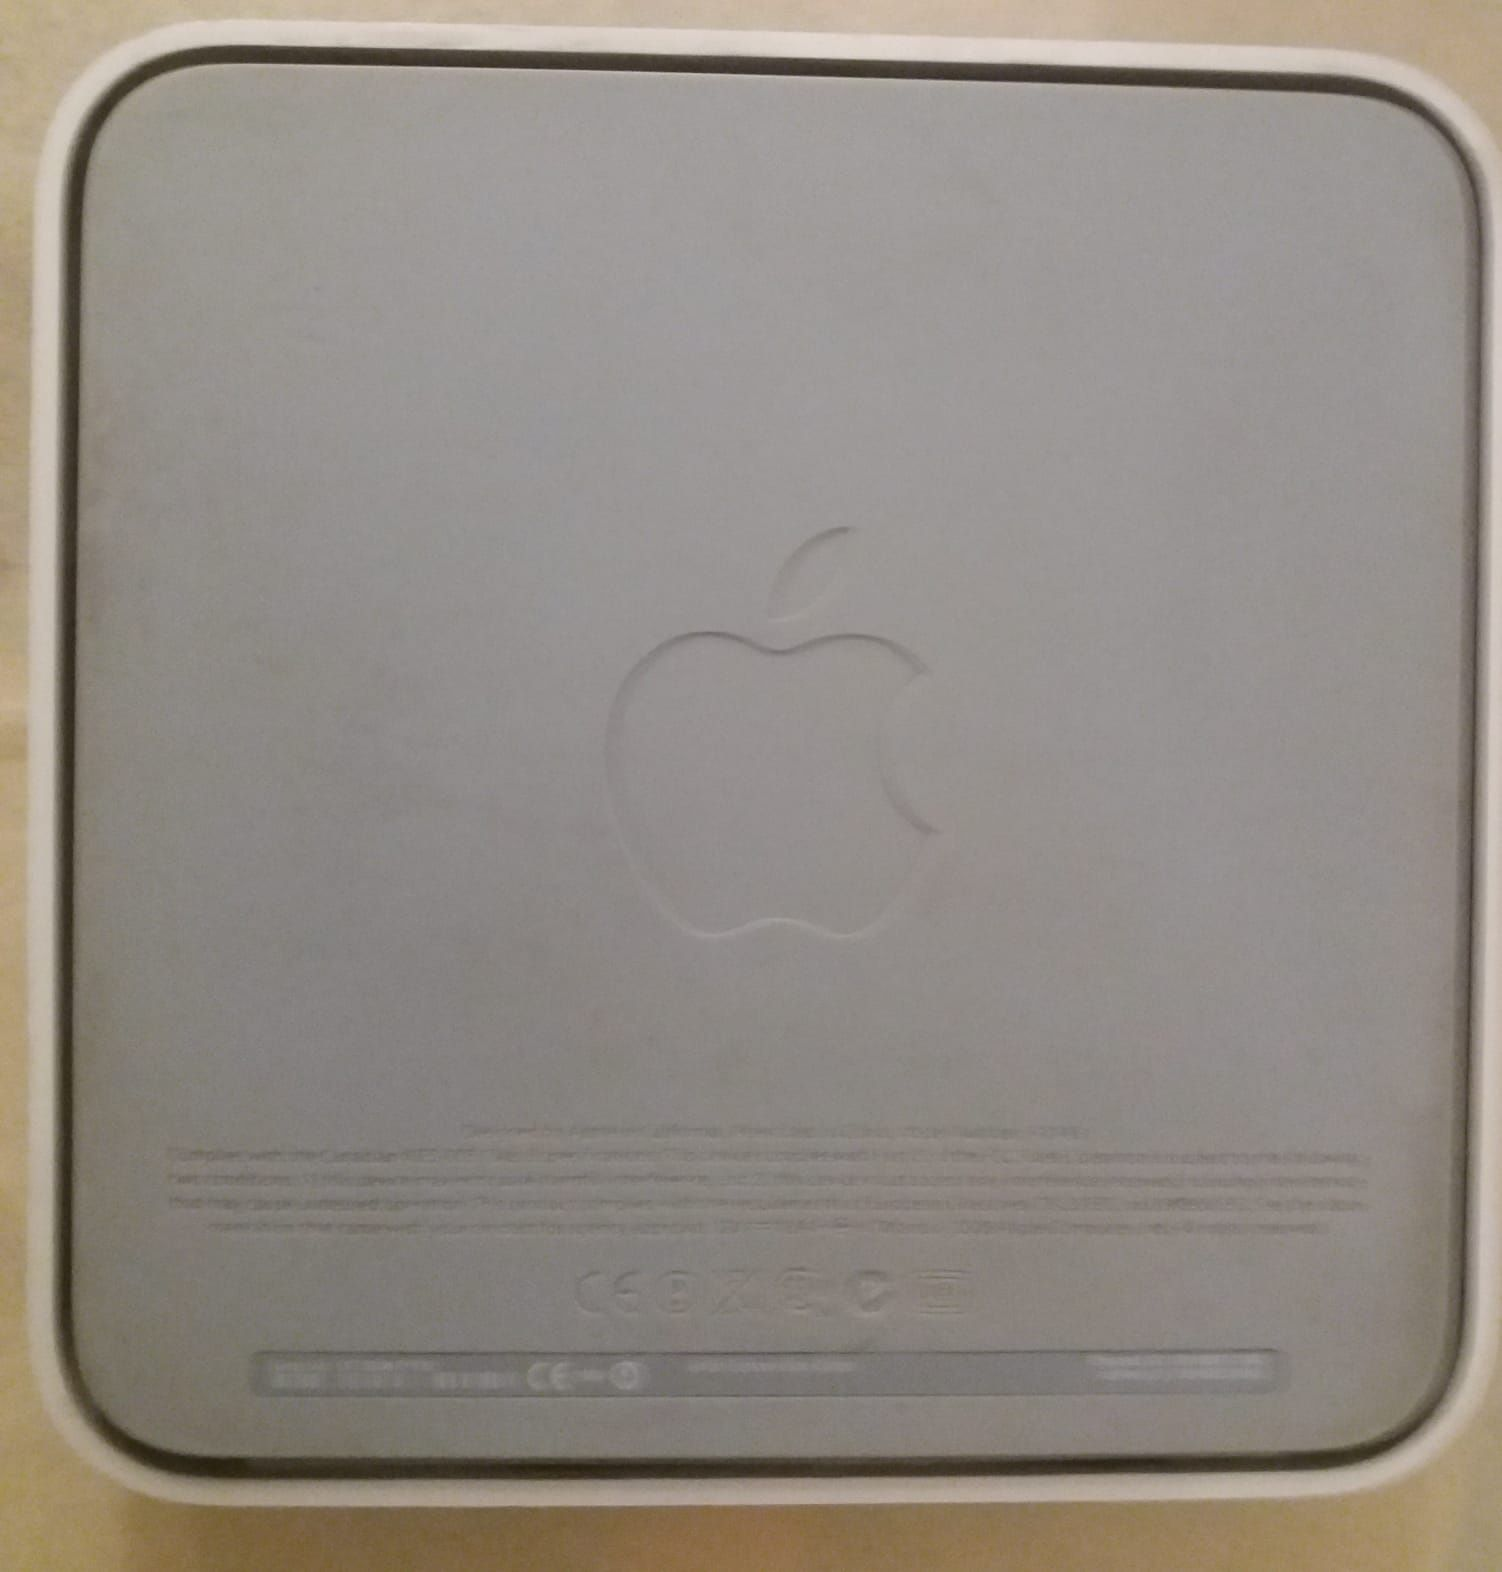 Router Wi-Fi Apple A1143